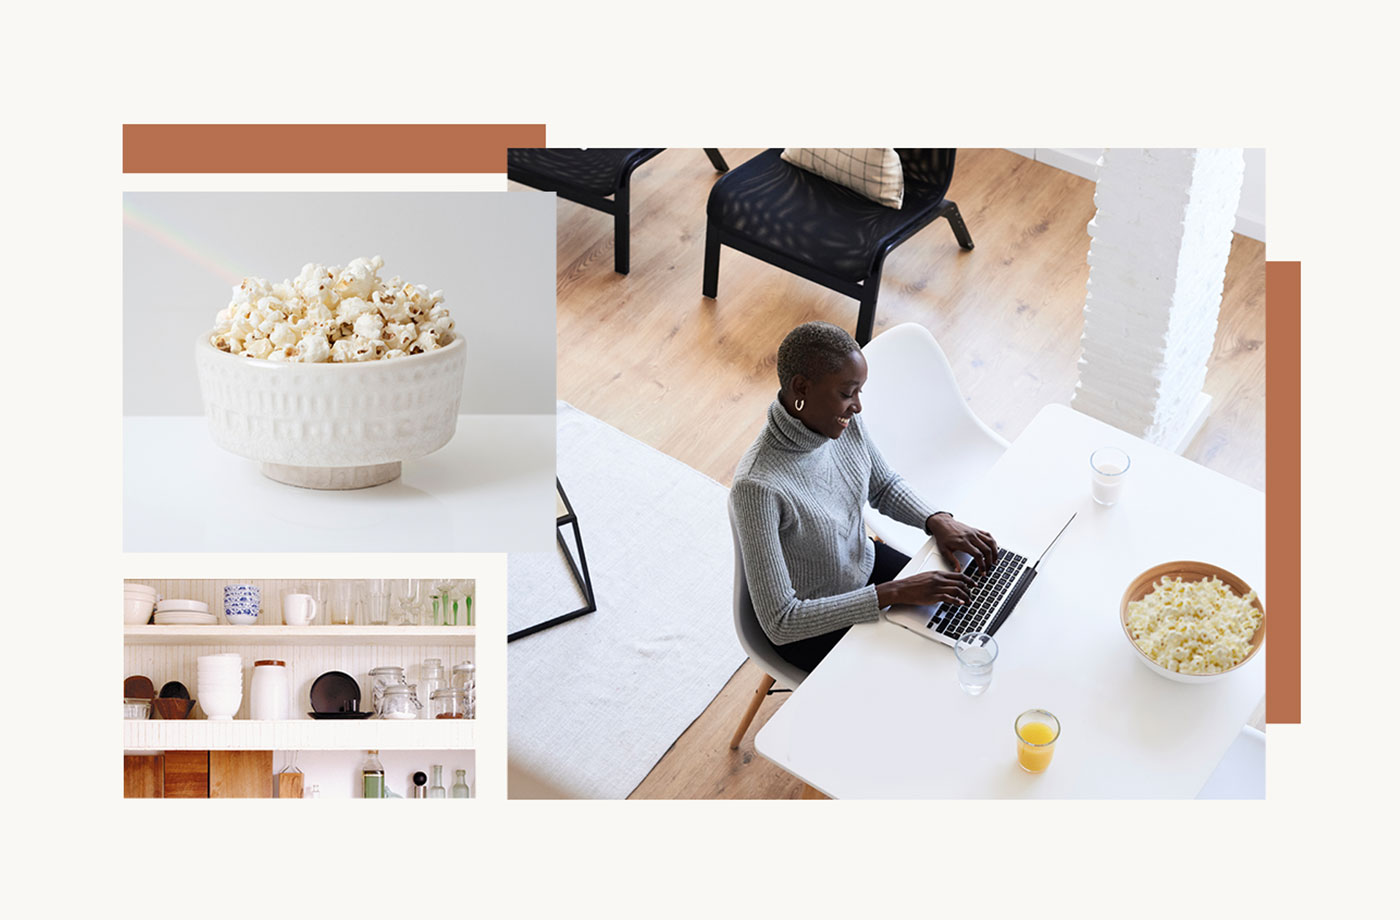 Thumbnail for Genius Idea: Turn a Corner of Your WFH Space Into a Snack Station That Will Rival Your Former Office's